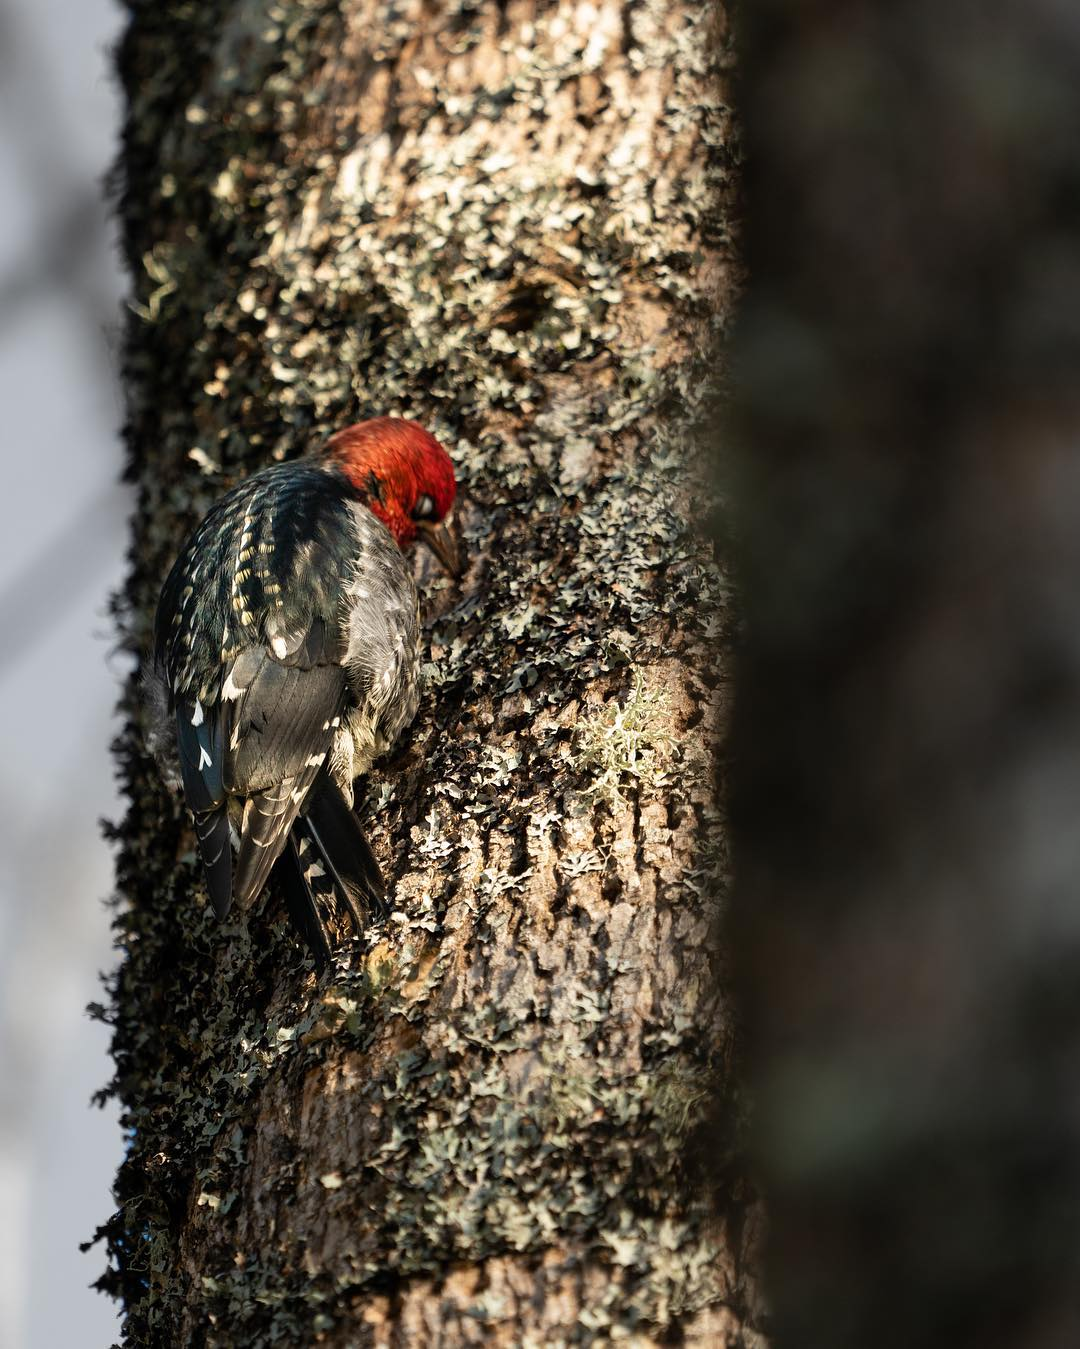 Red breasted sapsucker, a small brown and black bread with red head pictured on a brown tree trunk